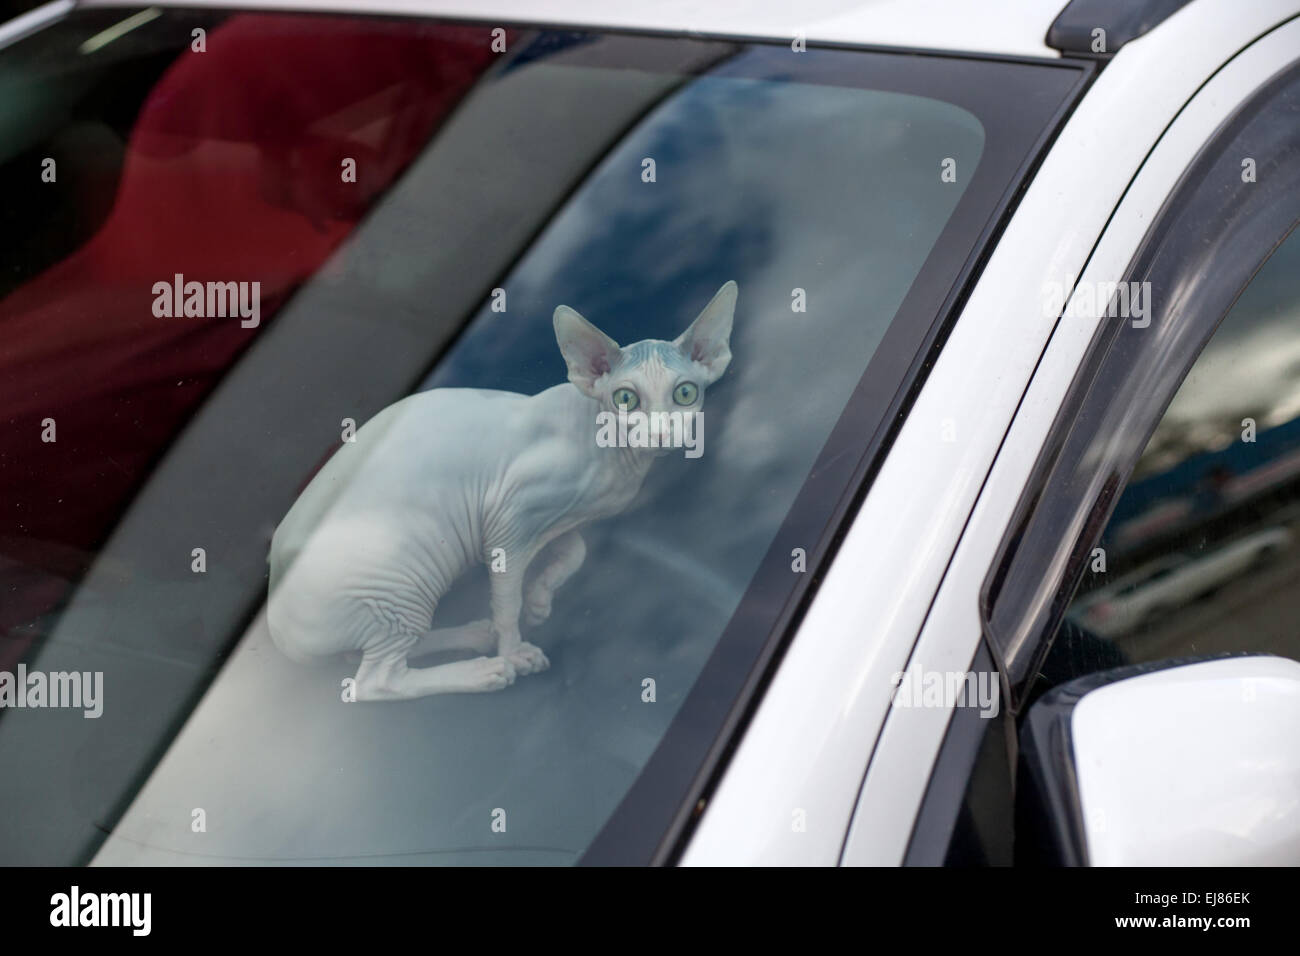 Sphinx cat inside a car looking at camera - Stock Image